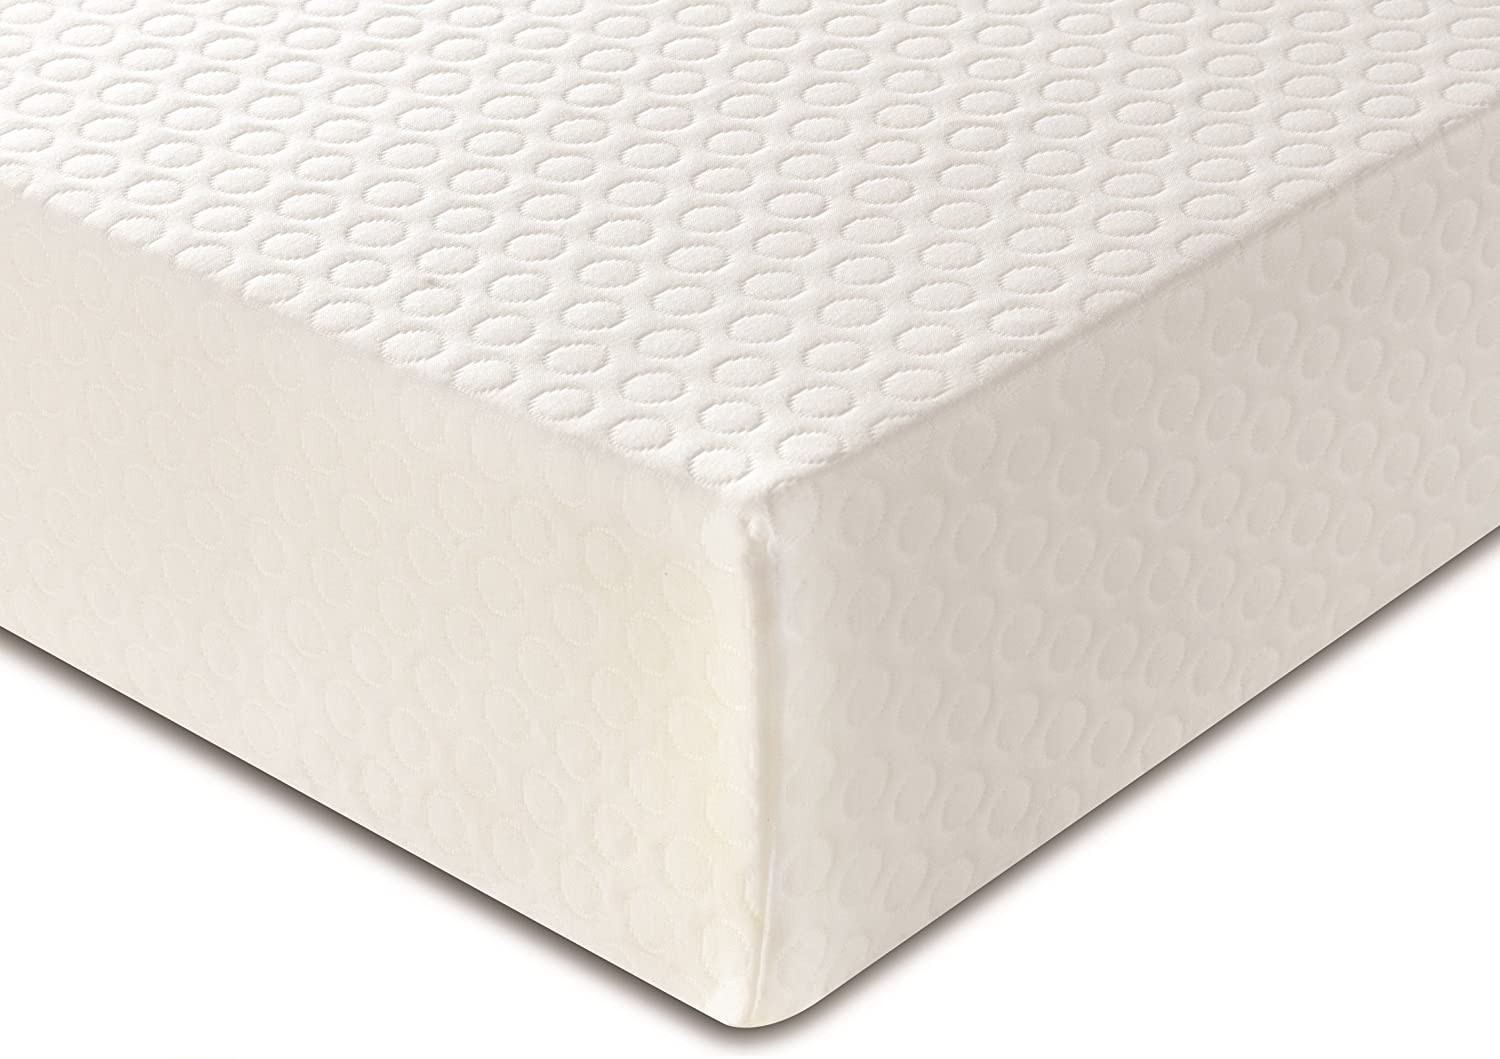 DuraTribe Golden Sleep Smart Memory Foam Mattress with Washable Zip-off Cover - Available in all Standard and European sizes - FIRA Approved (Single (90 cm x 190 cm))